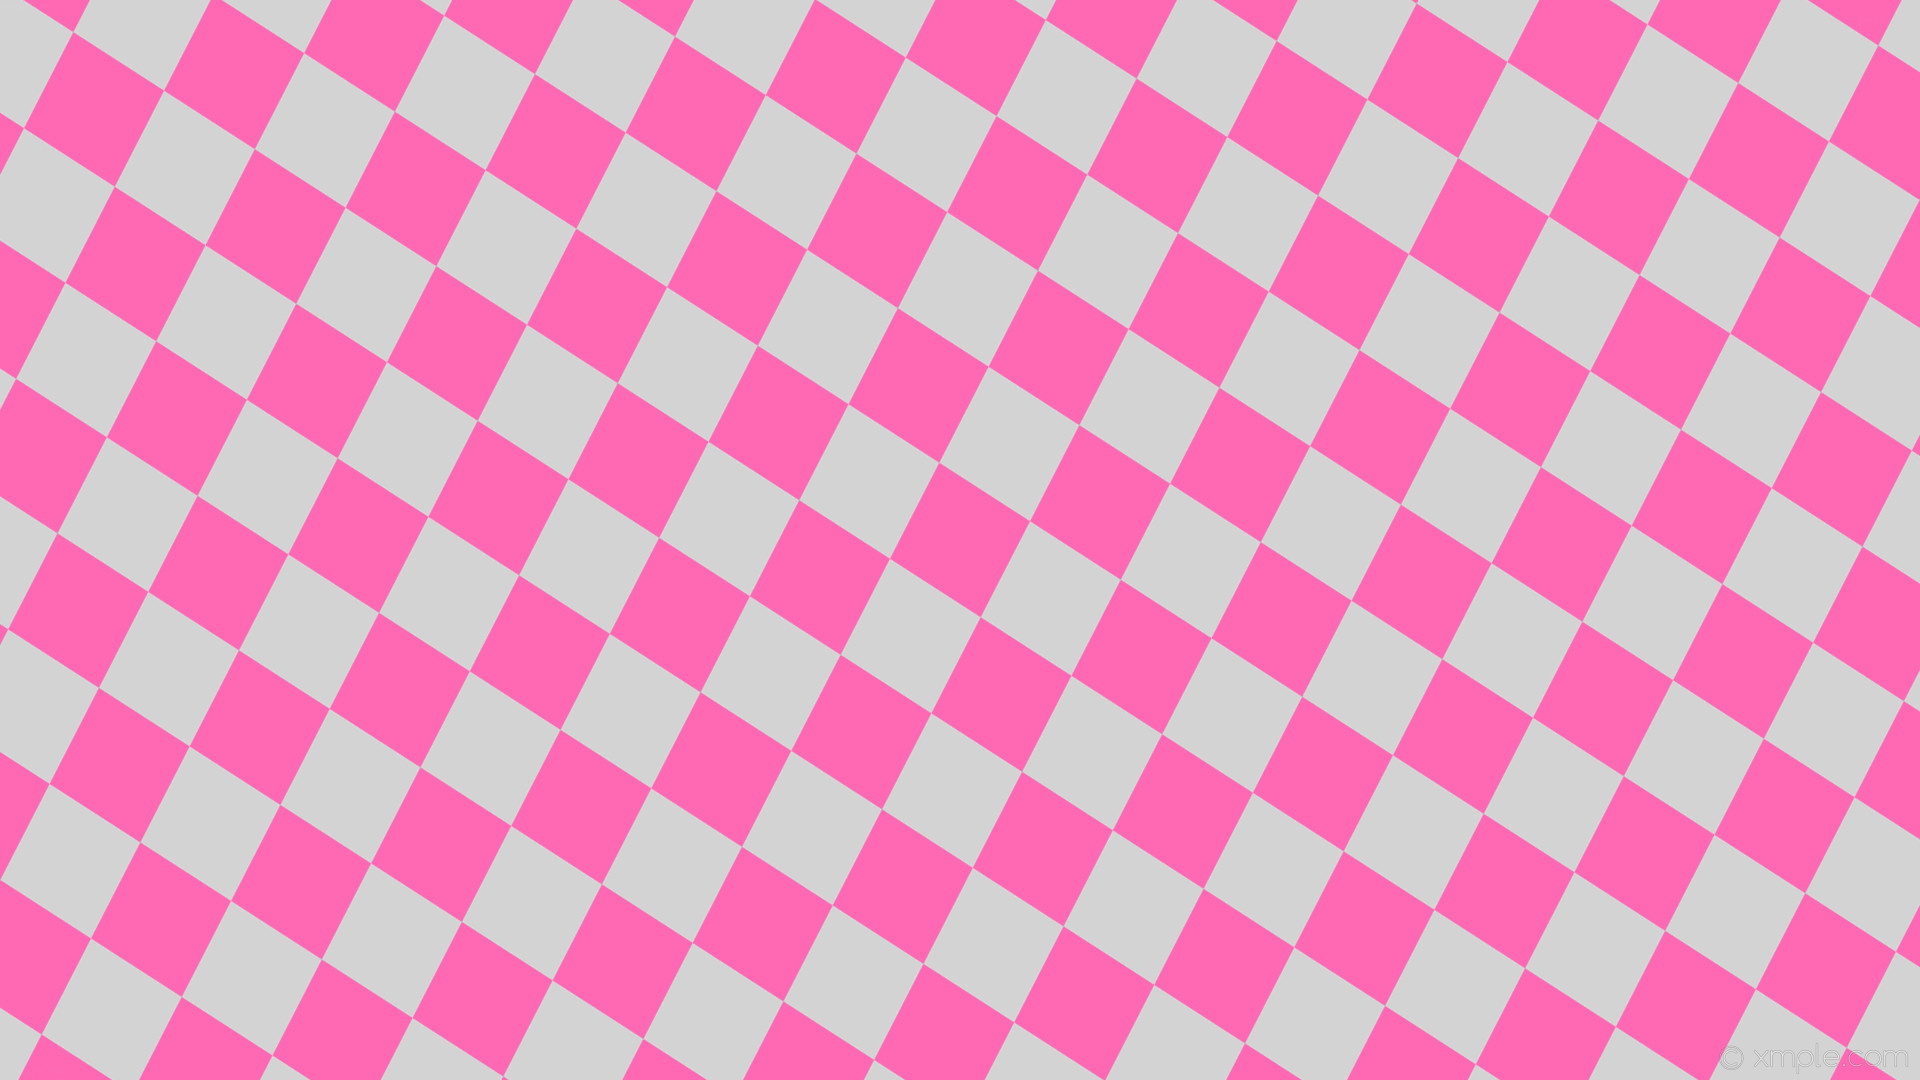 Pink Diamonds Live Wallpaper 41 for Android  Download